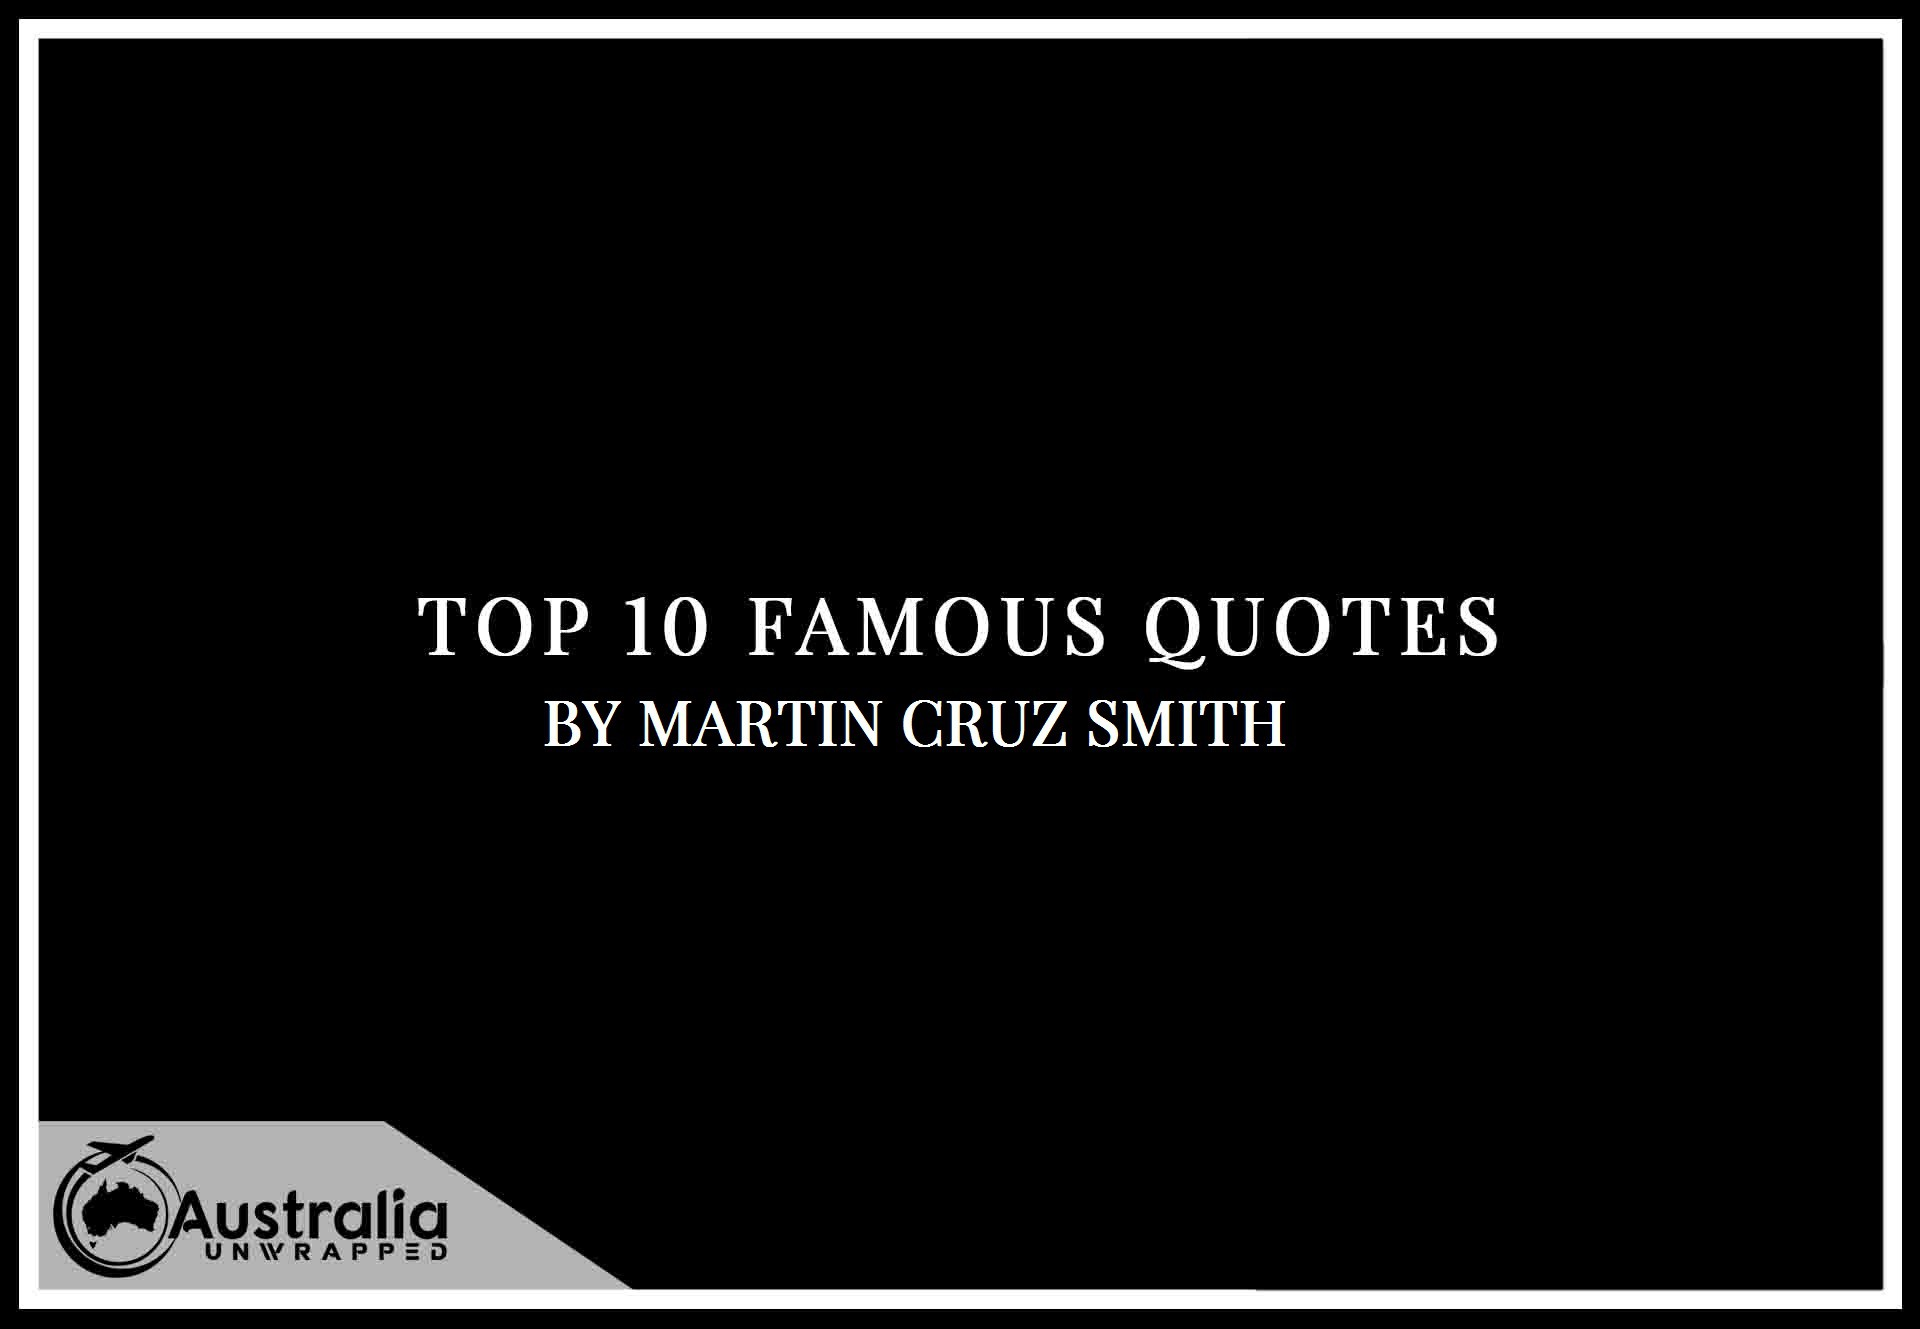 Martin Cruz Smith's Top 10 Popular and Famous Quotes